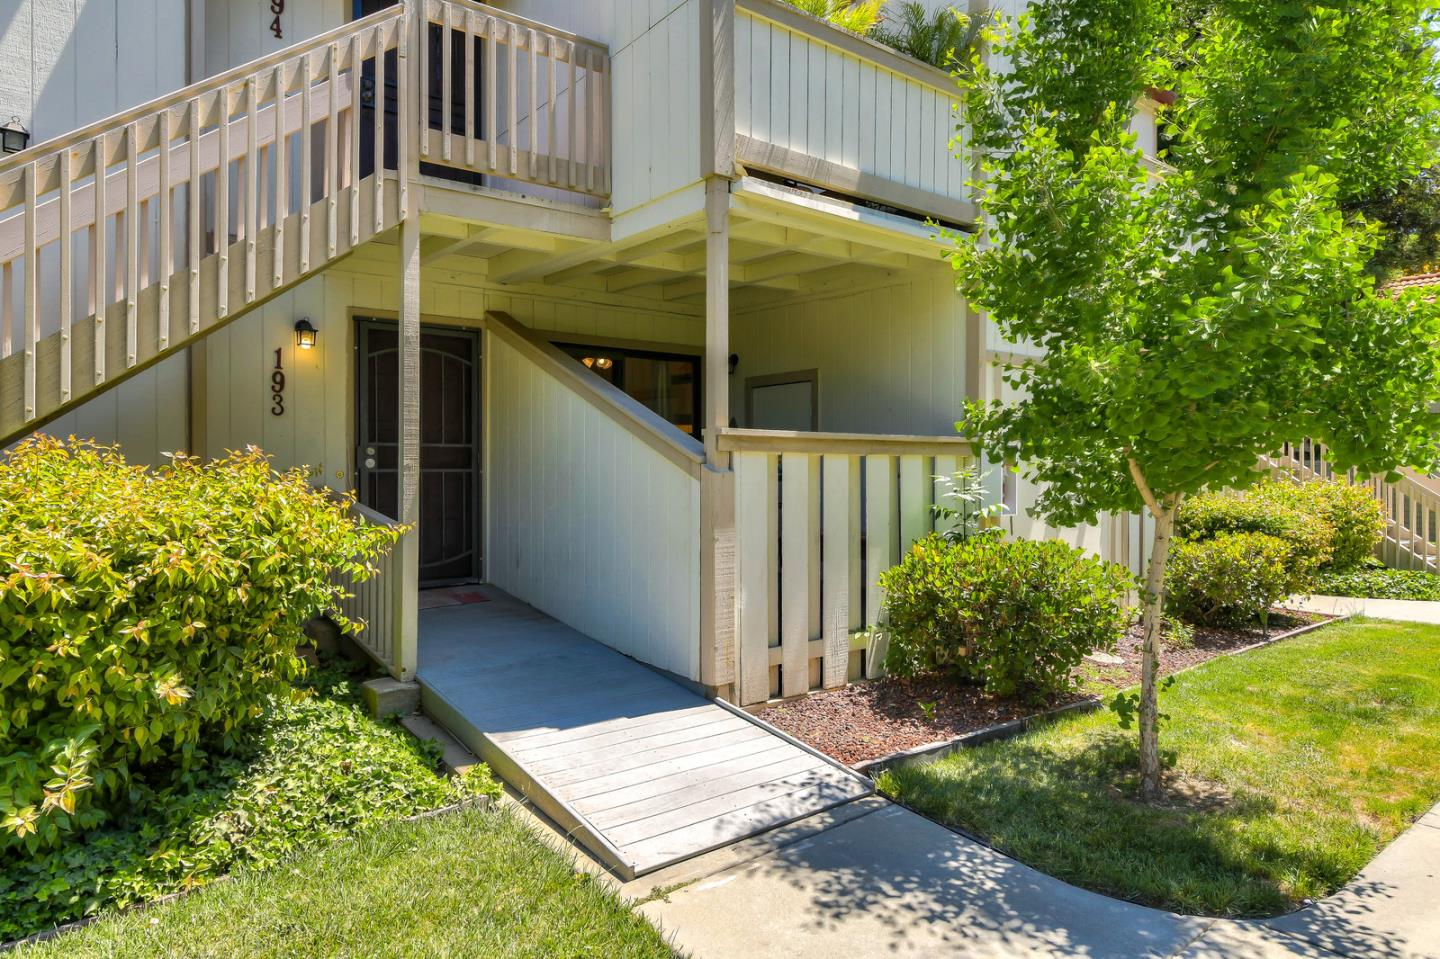 Image not available for 193 Sunwood Meadows Place, San Jose CA, 95119